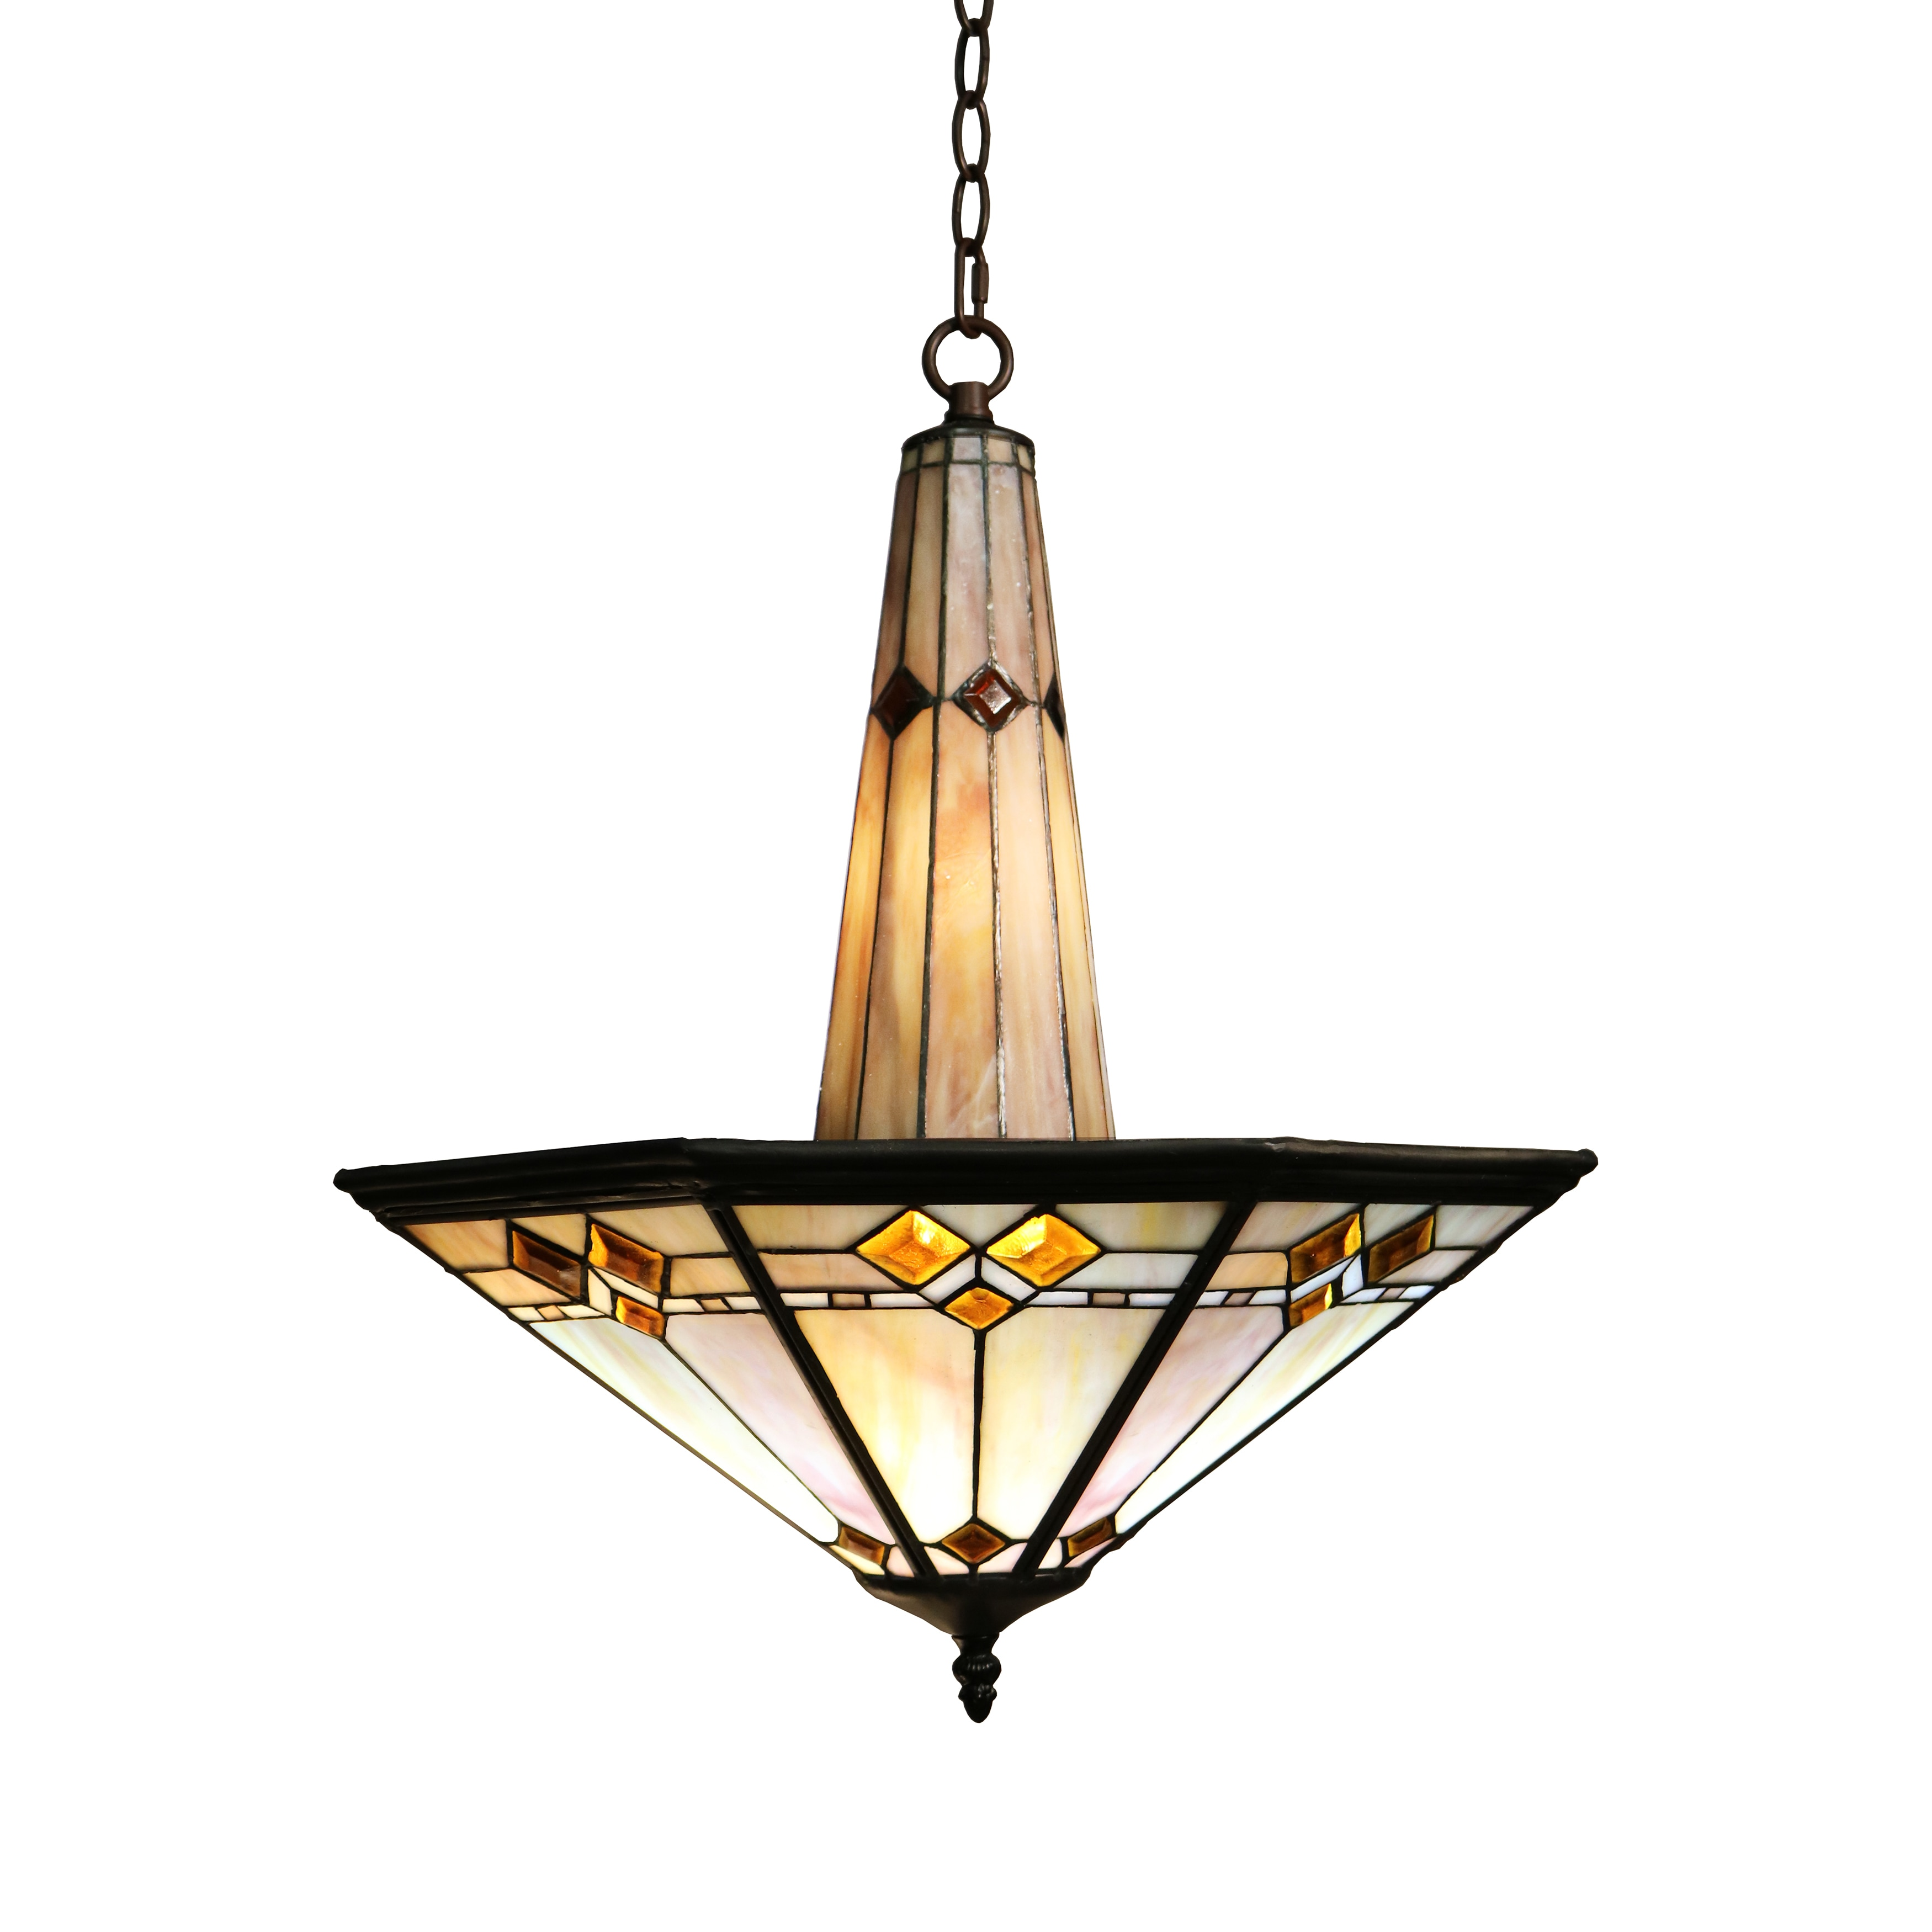 Sue 3 light Mission Style 19 inch Tiffany style Ceiling Lamp